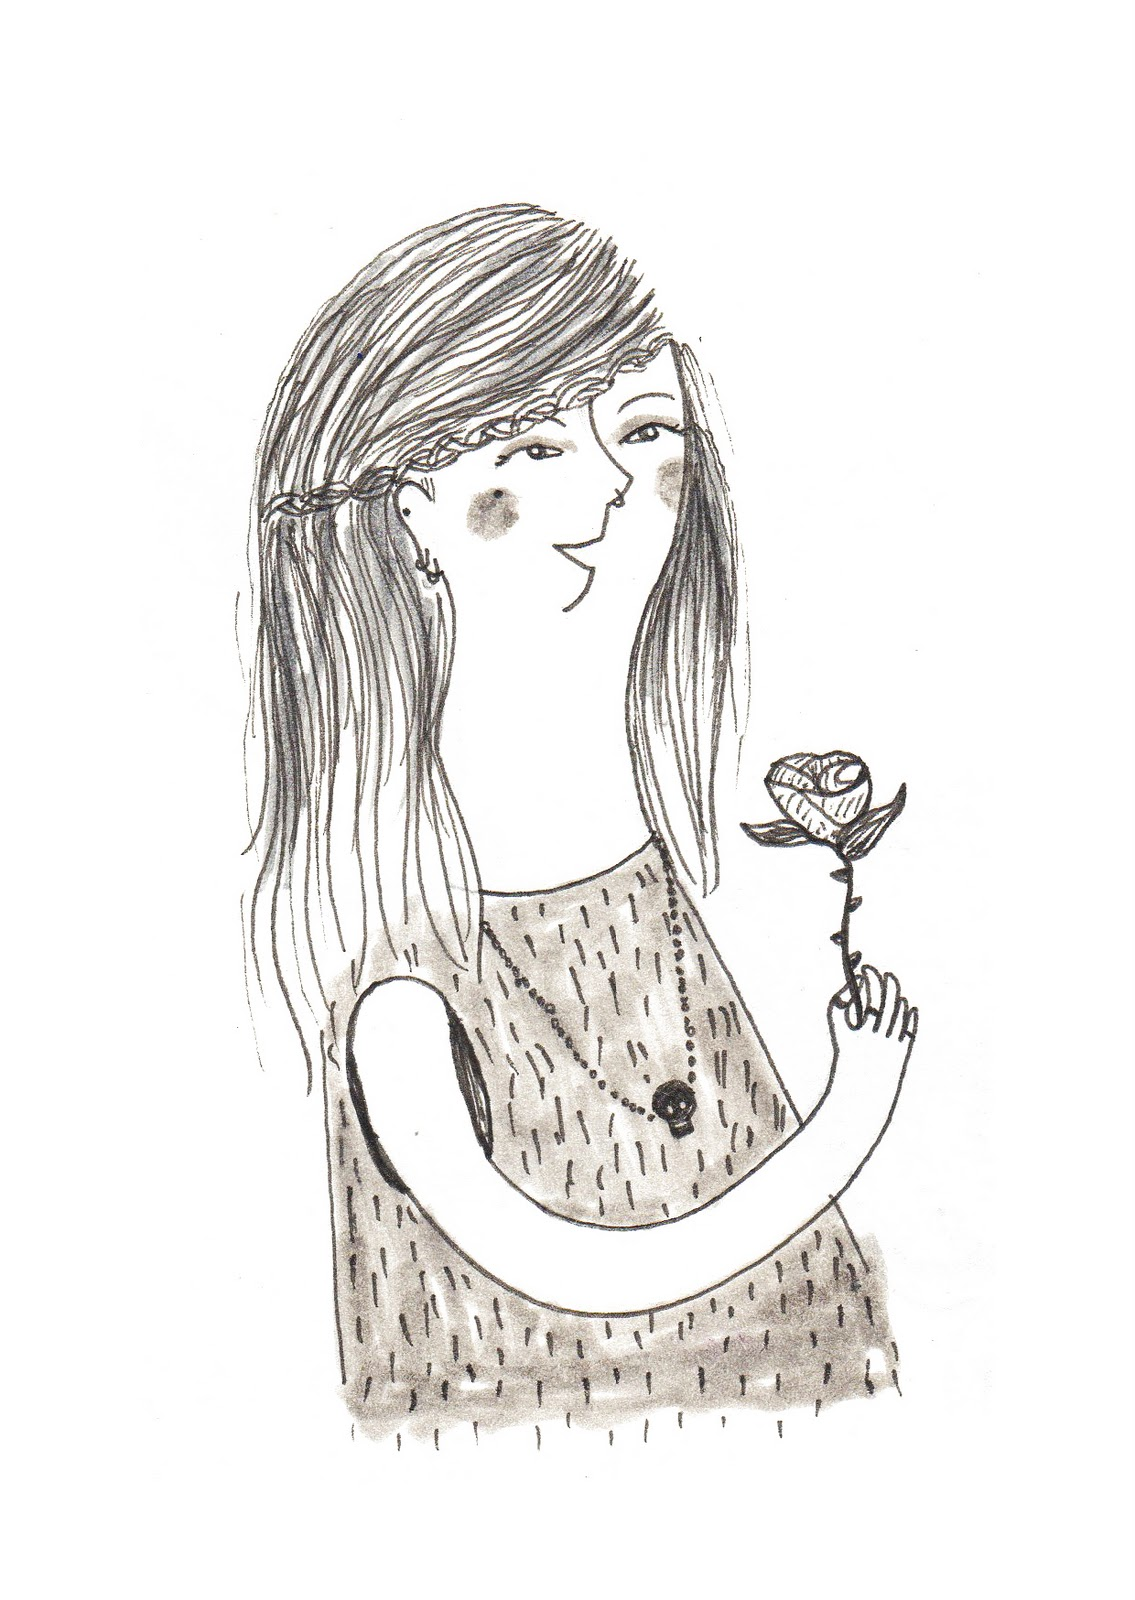 artist profile kiley victoria woolgar art prints stationery where do you see yourself in 5 years